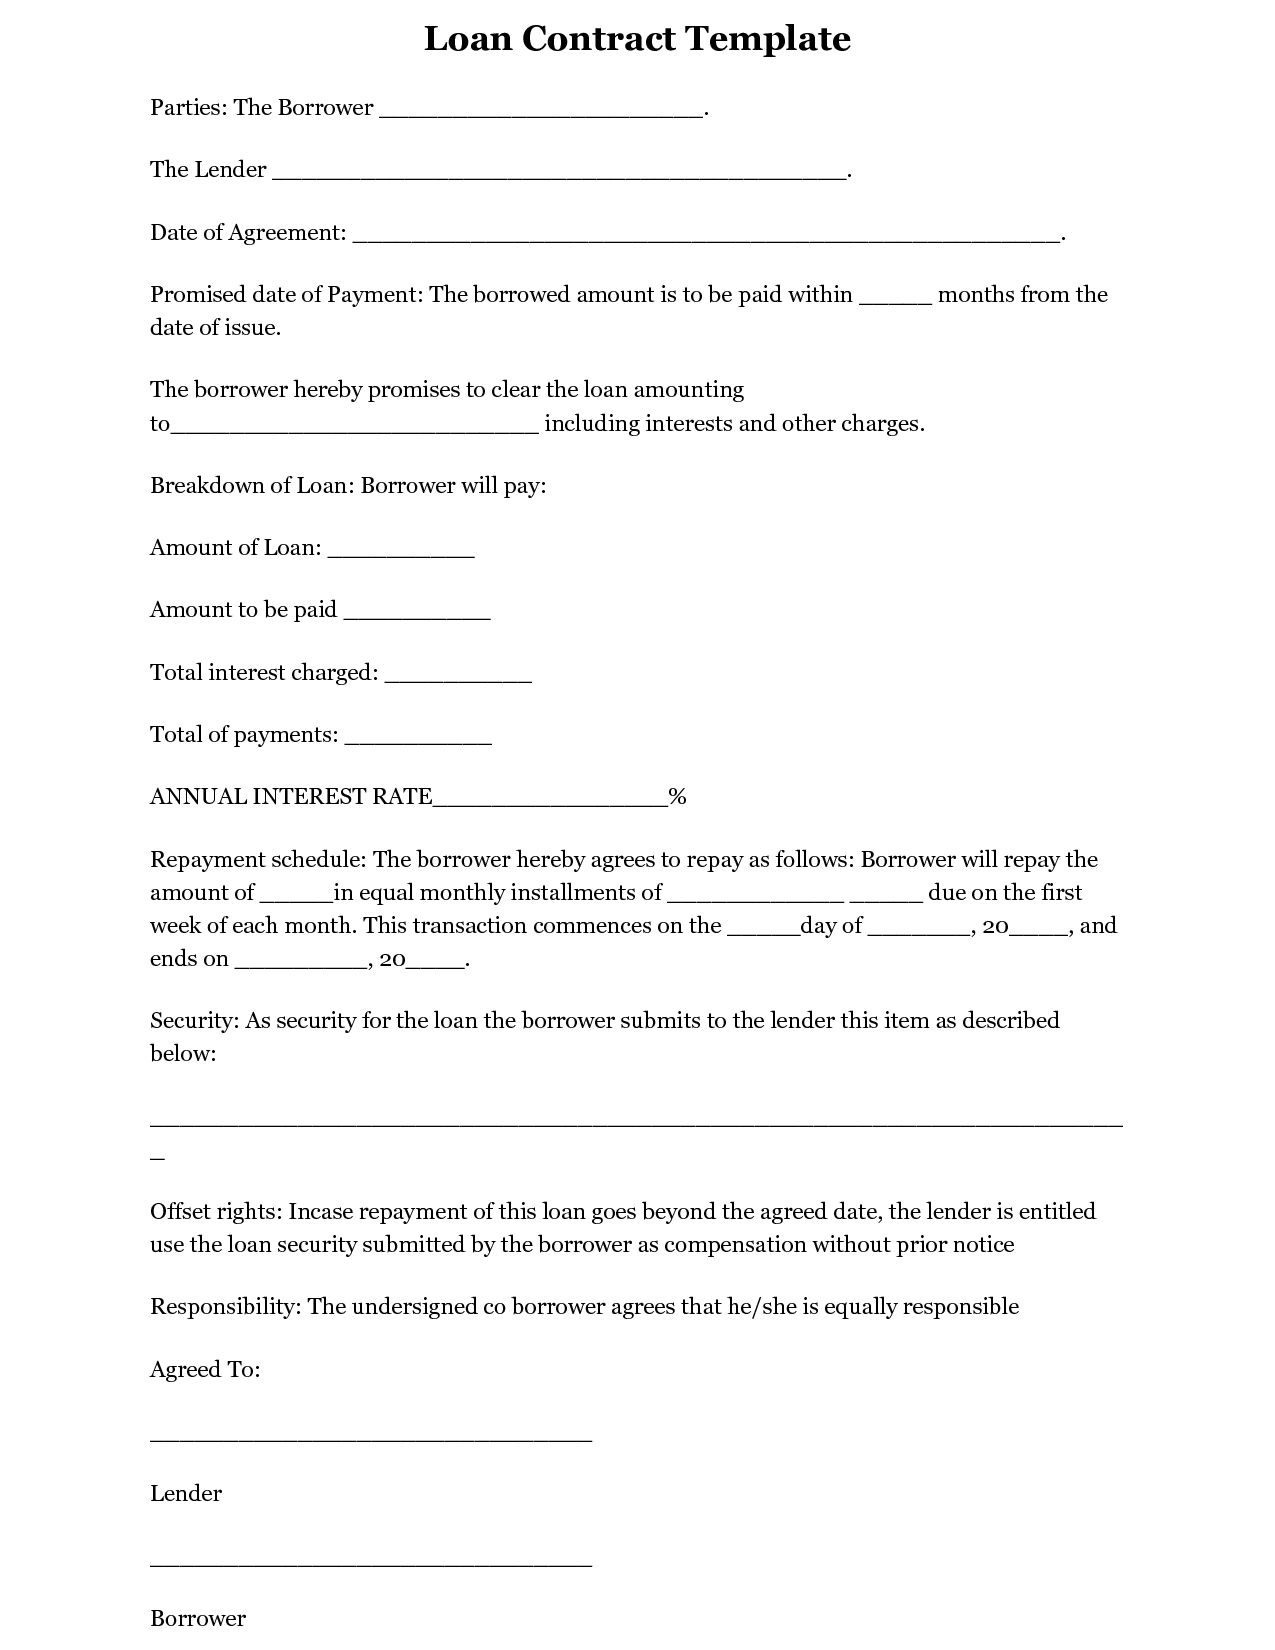 Loan Agreement Loan Agreement Personal Loan Agreement Template Contract Template